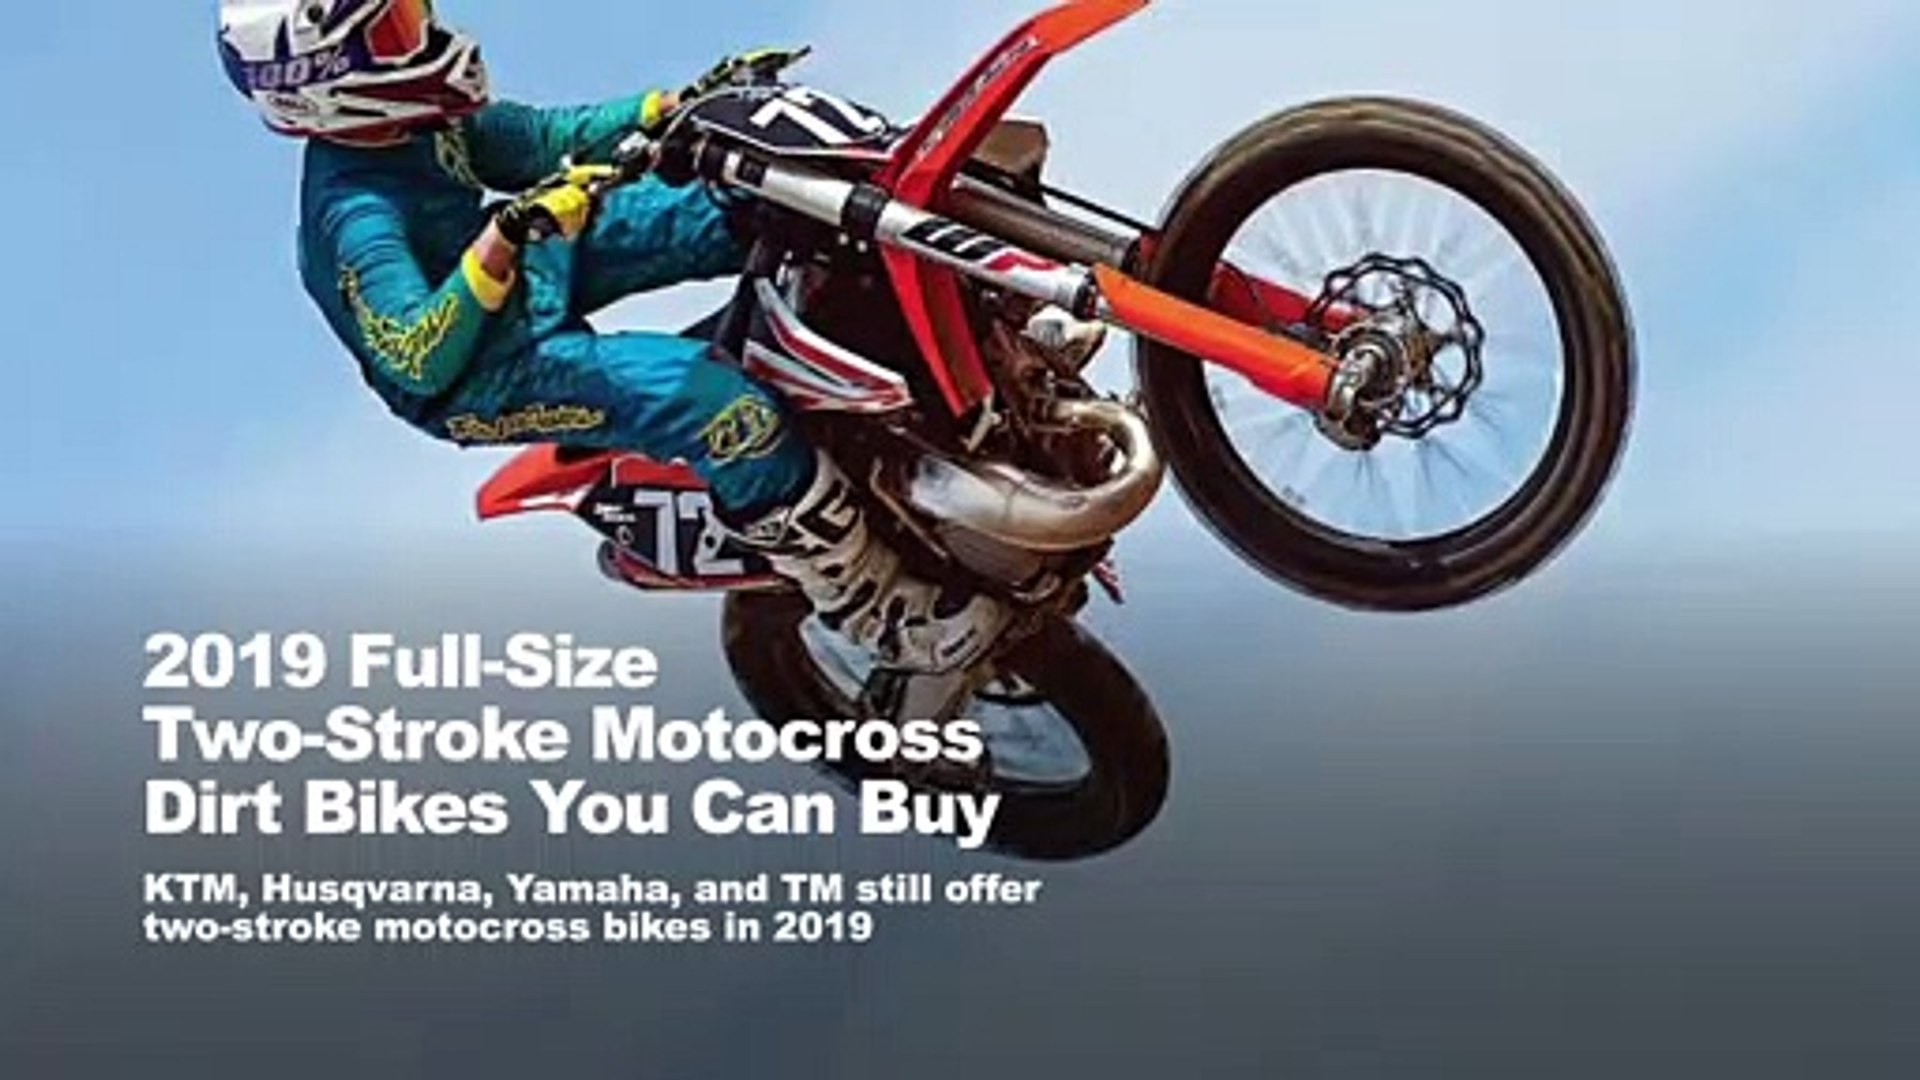 2019 Full-Size Two-Stroke Motocross Dirt Bikes You Can Buy